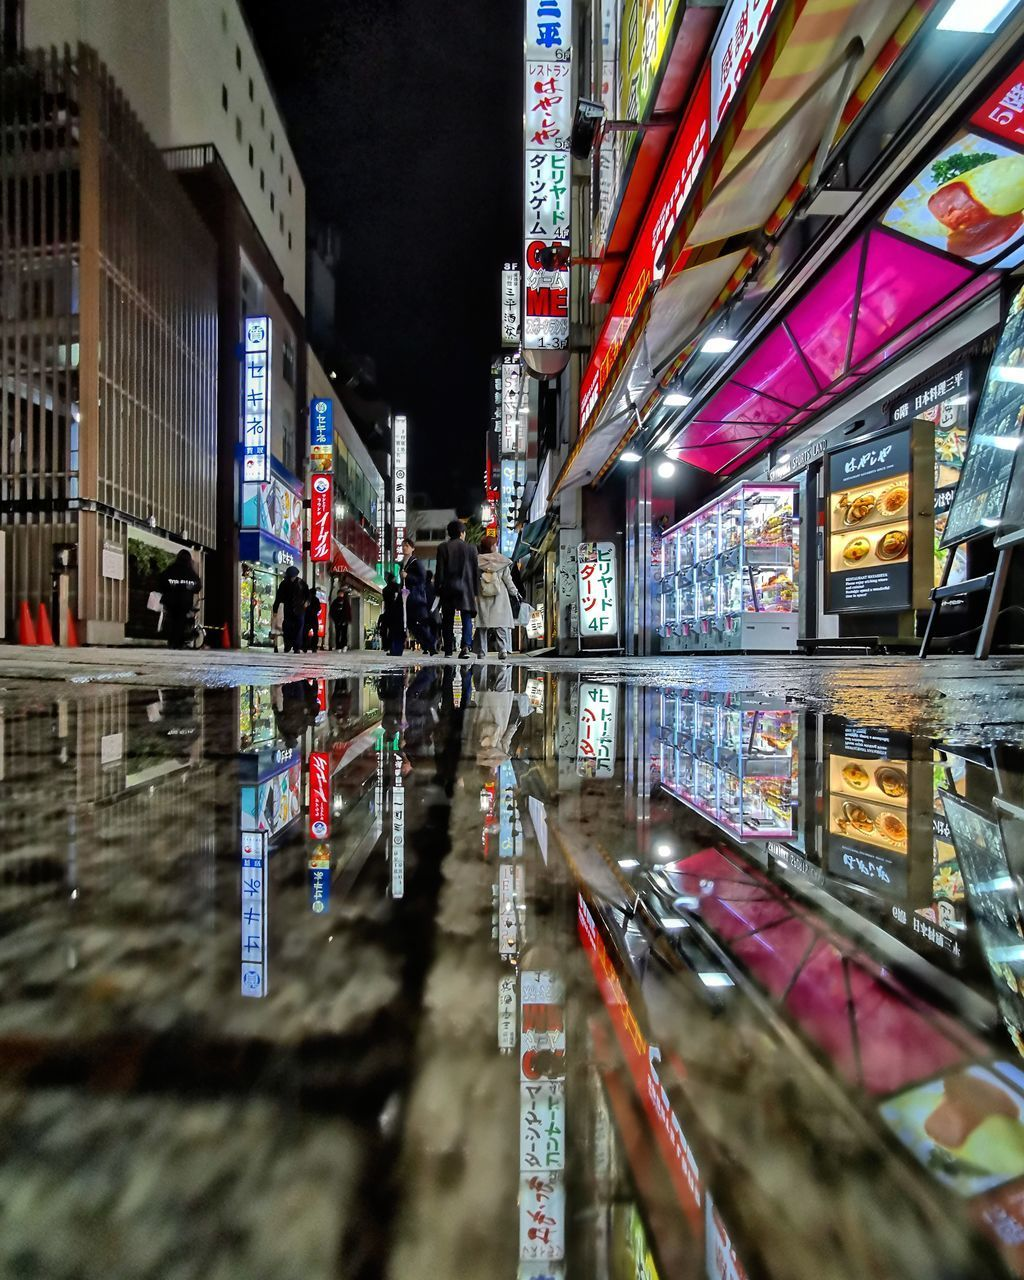 REFLECTION OF ILLUMINATED BUILDING IN PUDDLE